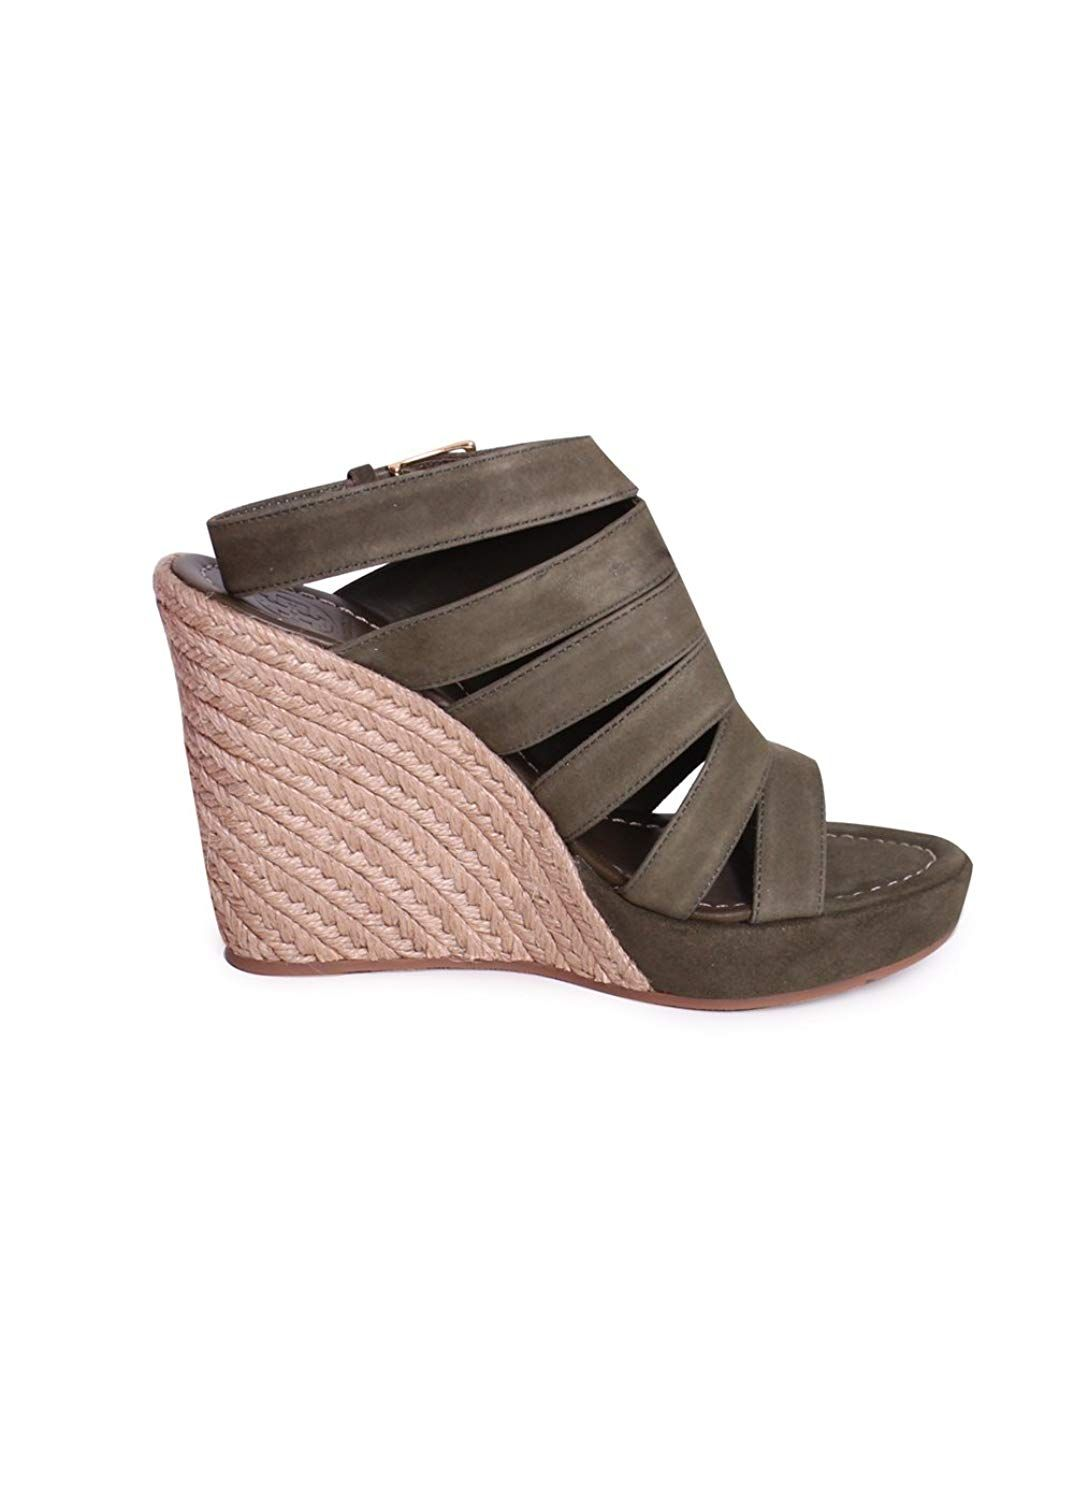 9a6db47bb24c Tory Burch Bailey Strappy Wedge Sandals